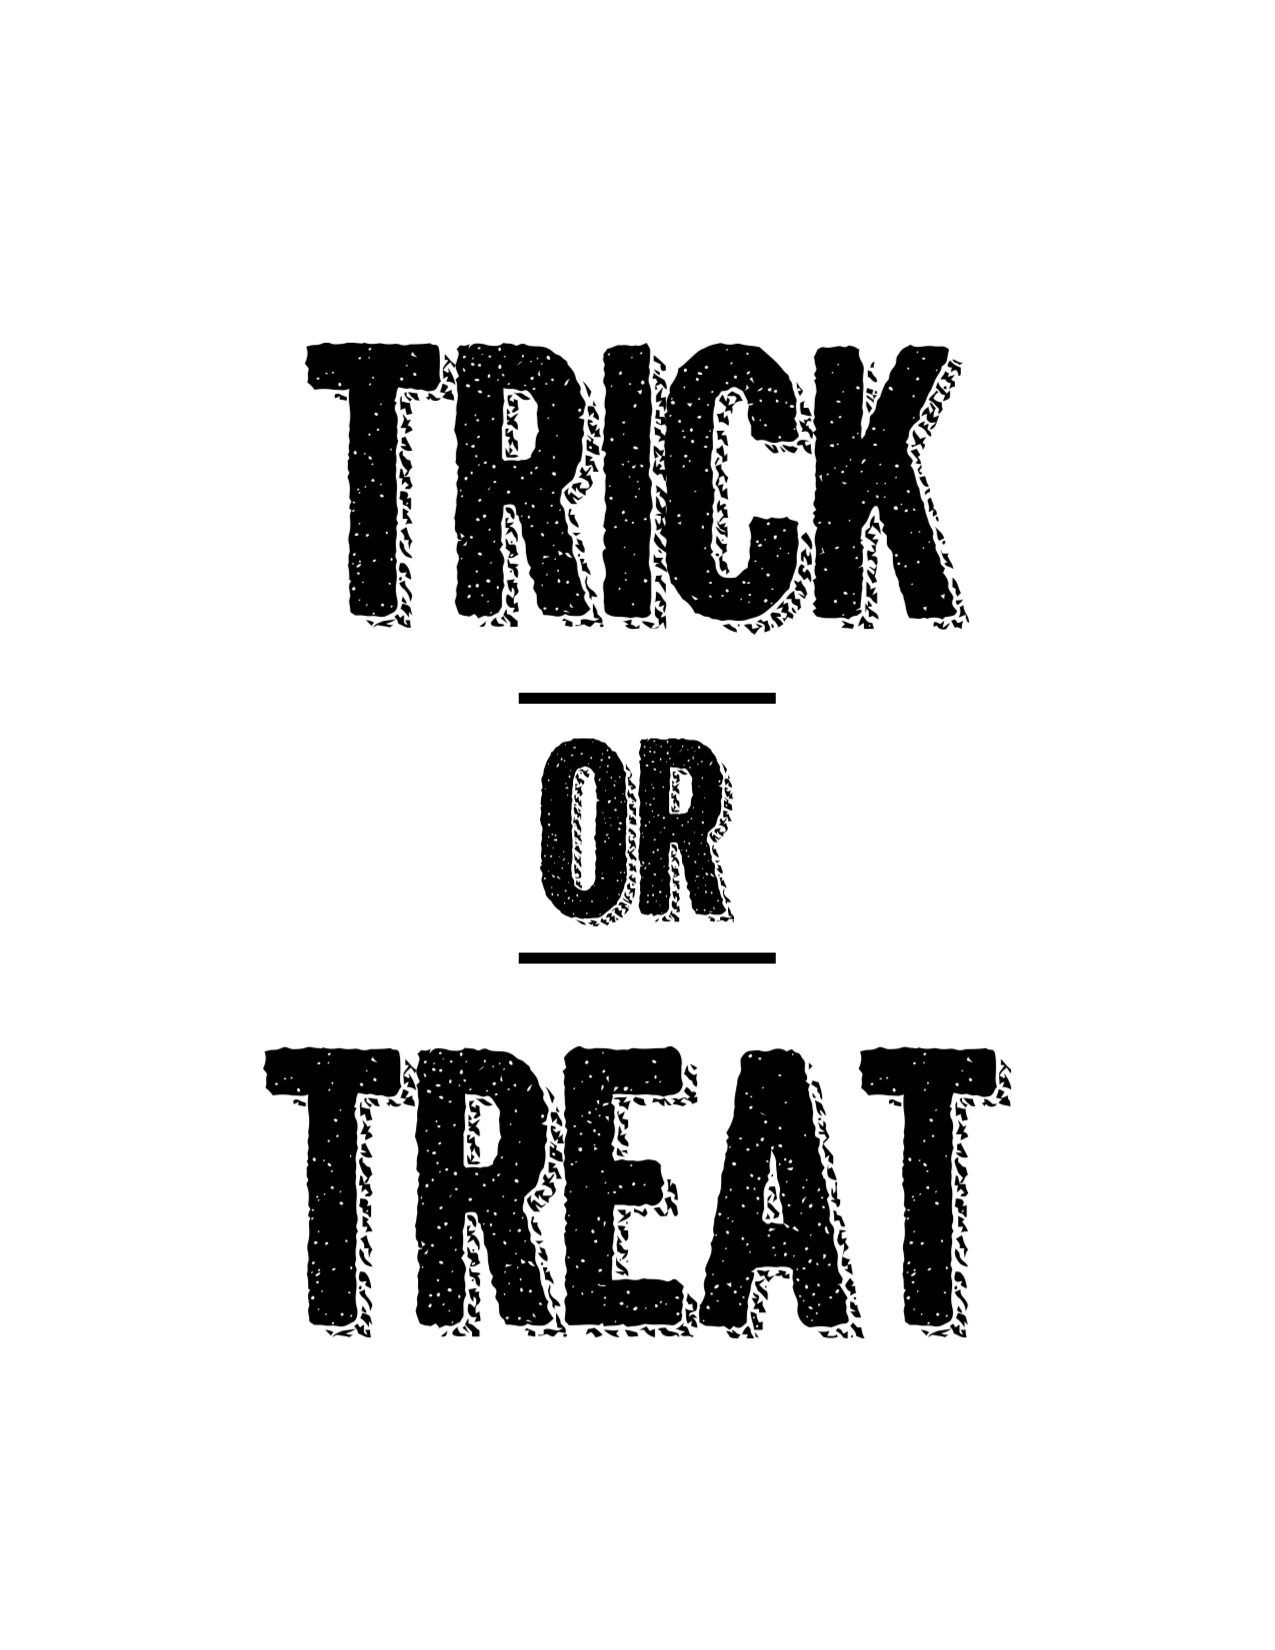 Halloween Trick or Treat Free Printable - Paper Trail Design